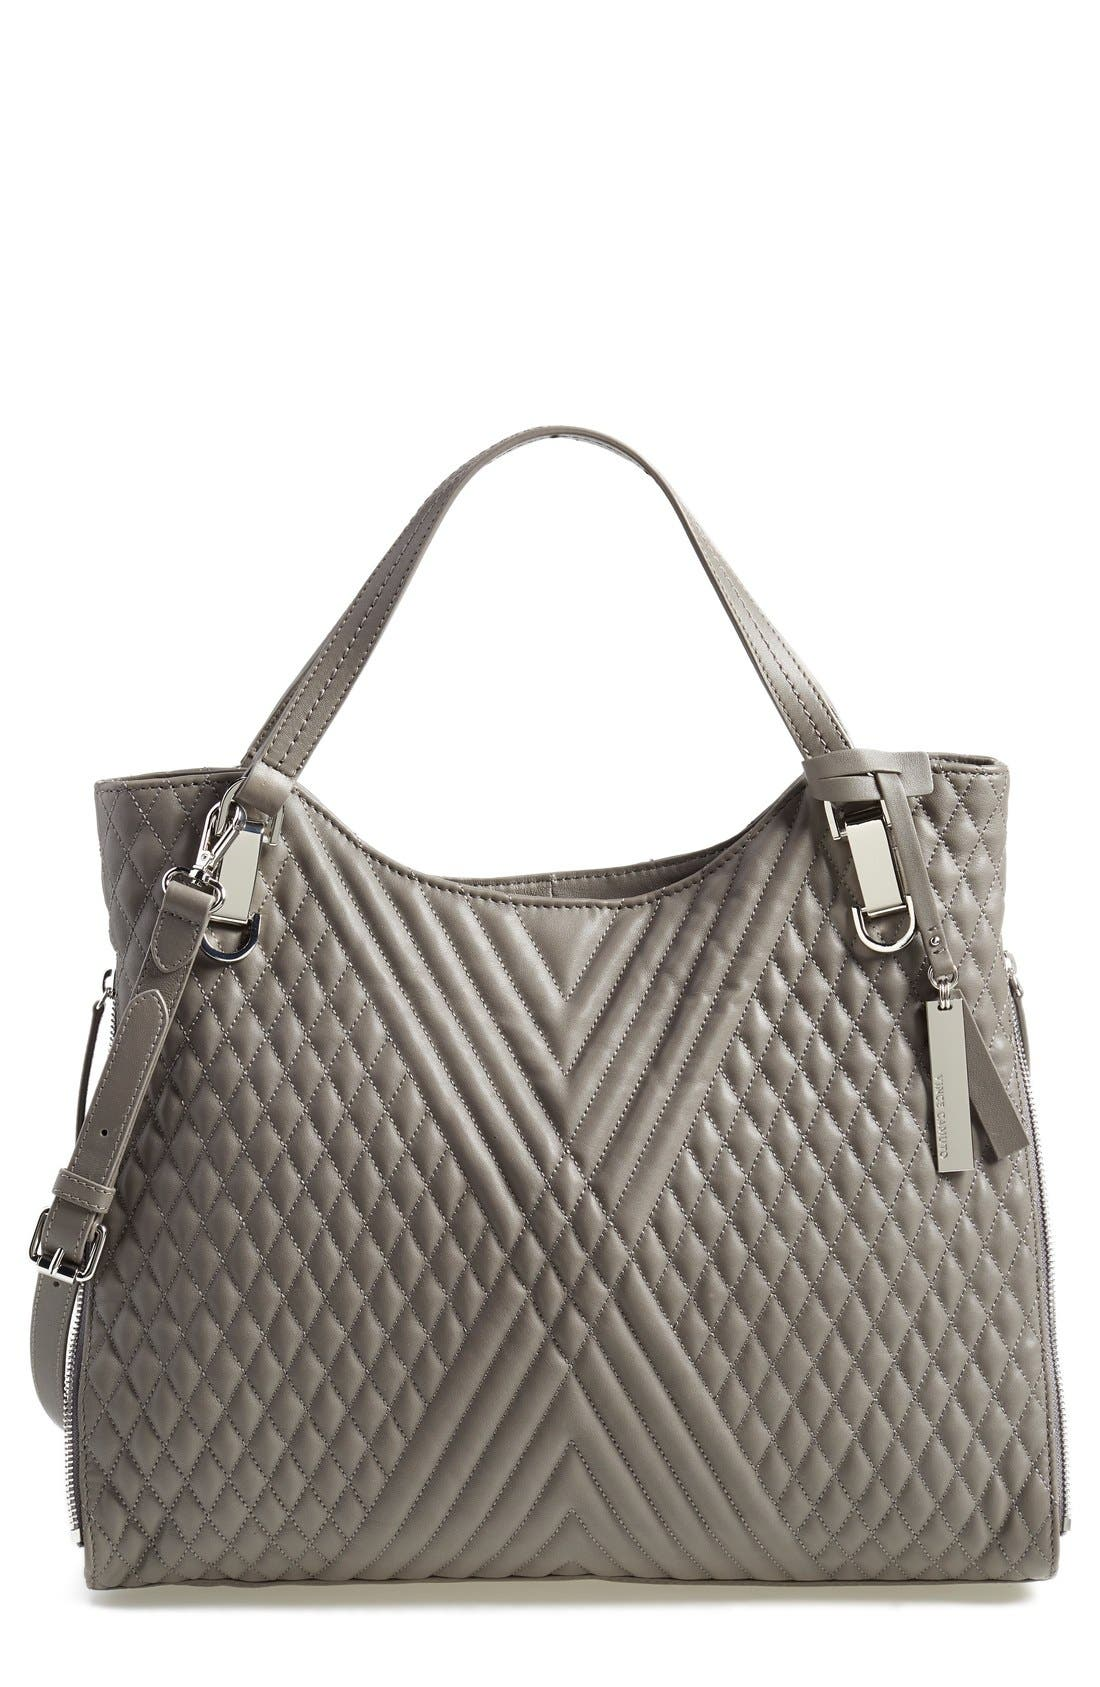 Main Image - Vince Camuto 'Riley' Quilted Leather Tote